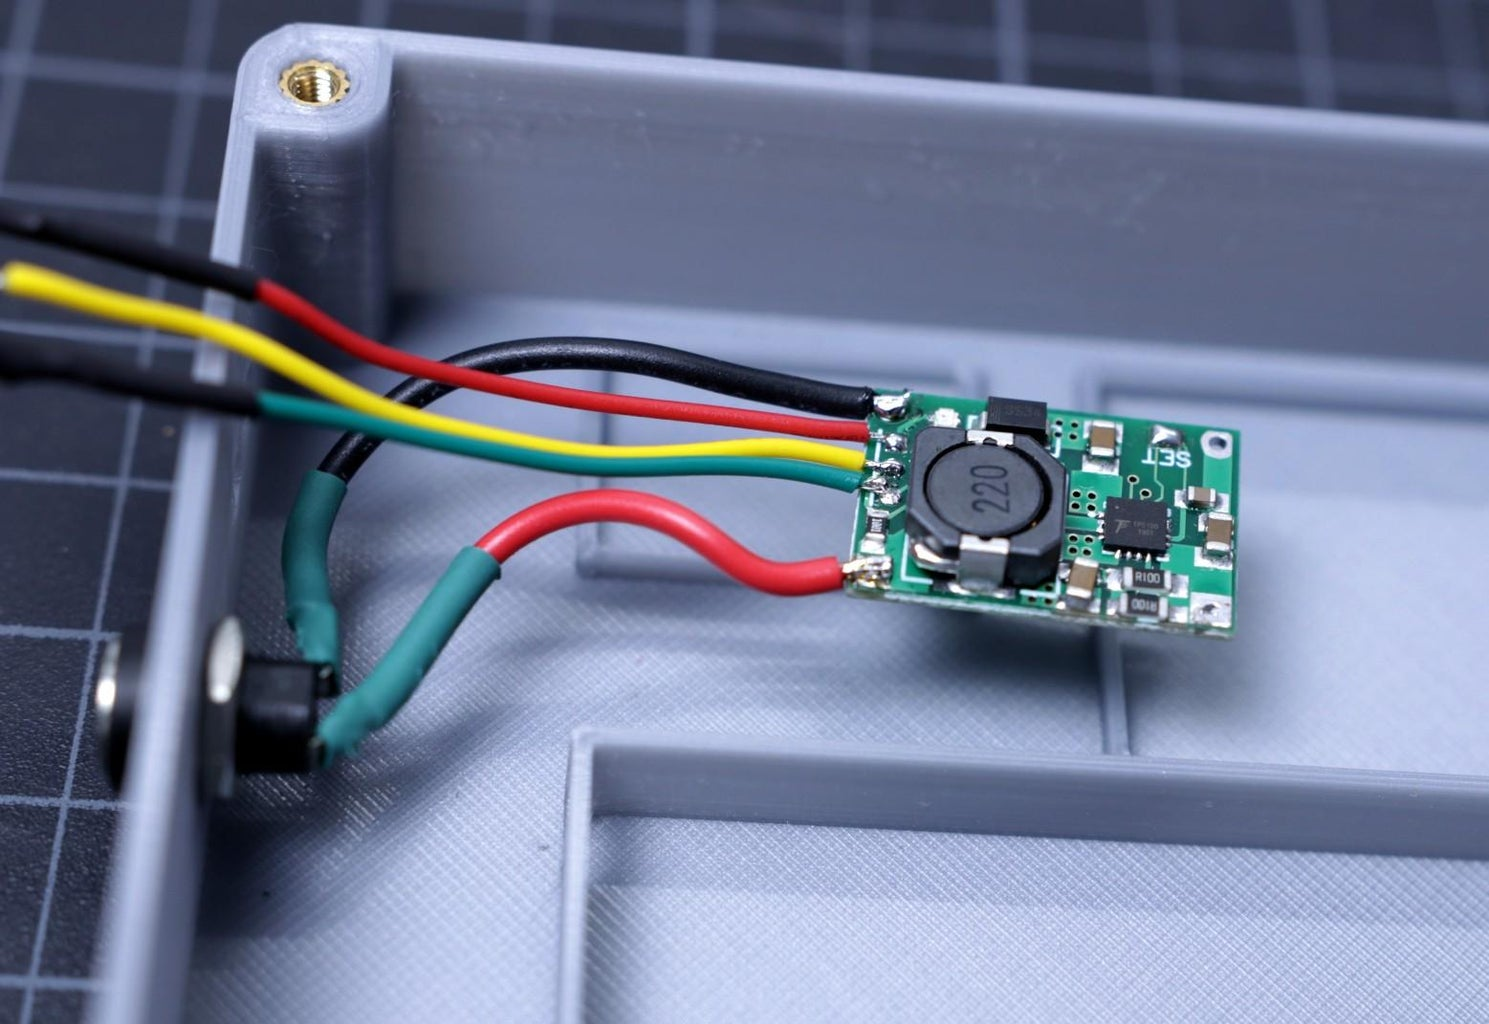 Connect the Input DC Jack to TP5100